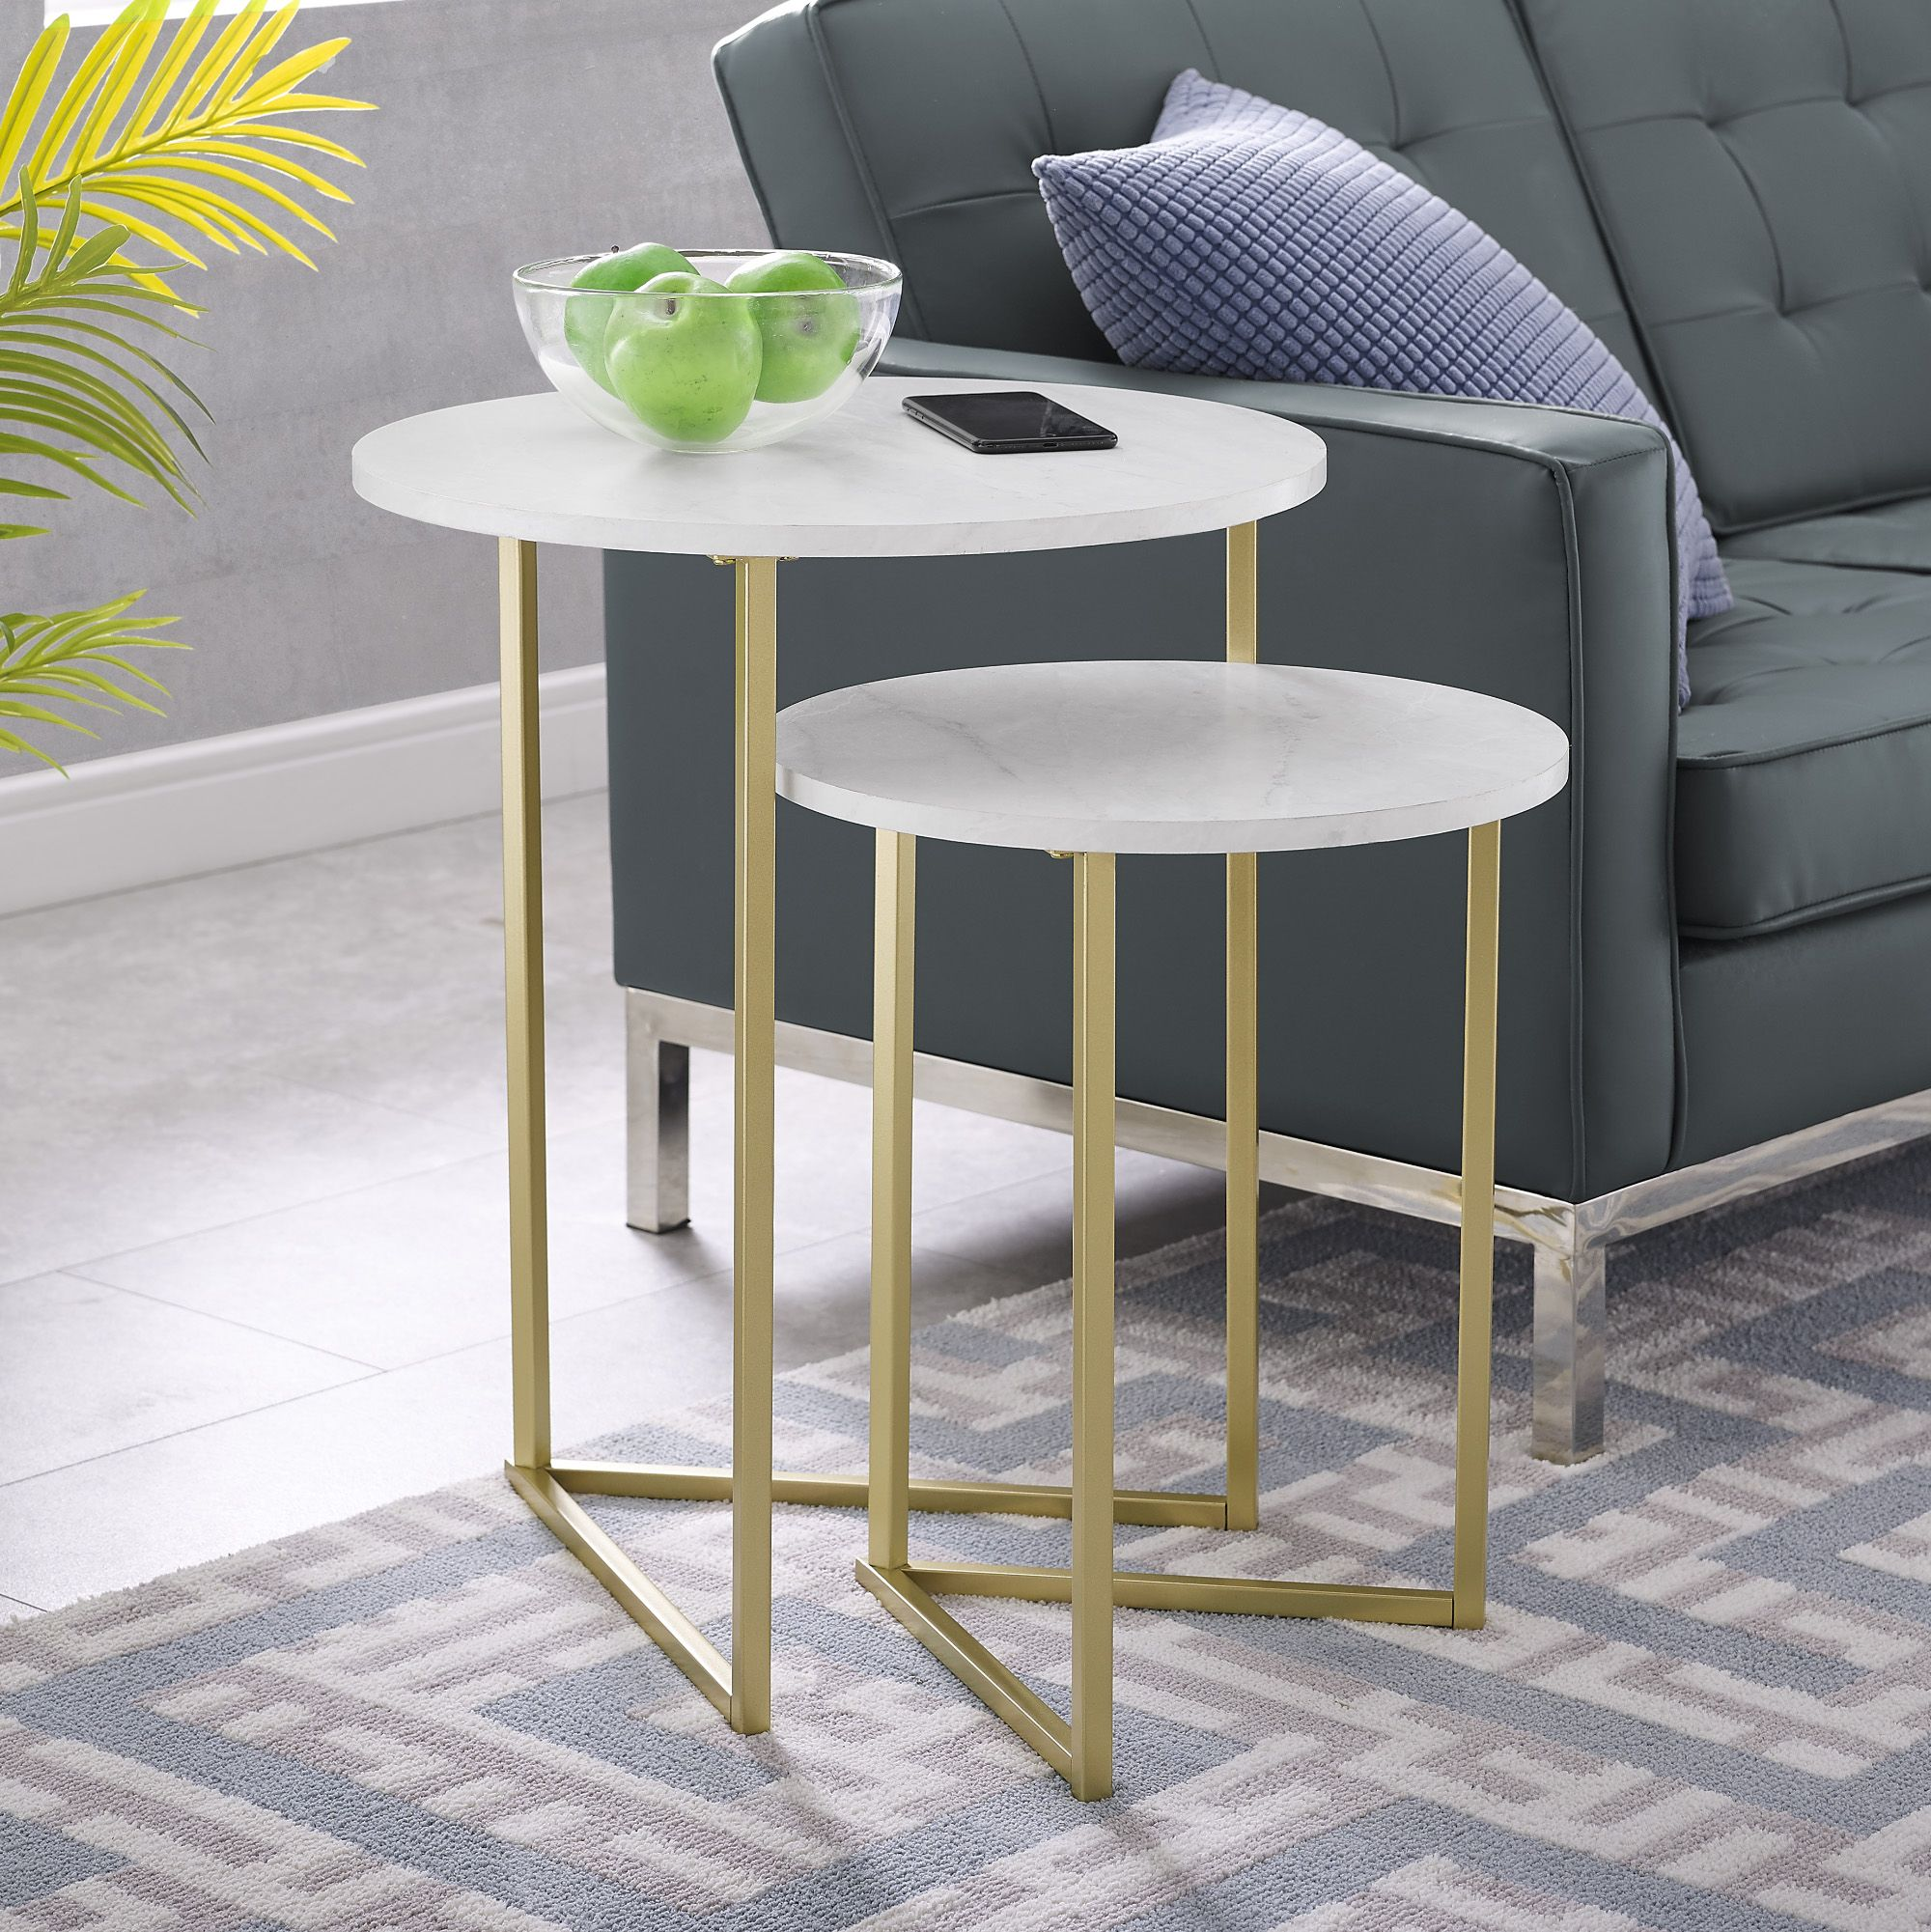 Free 2 Day Shipping Buy Manor Park 2 Piece Round Nesting End Tables White Faux Marble Gold At Walmart Com Nesting Tables Nesting End Tables End Tables [ 2001 x 2000 Pixel ]